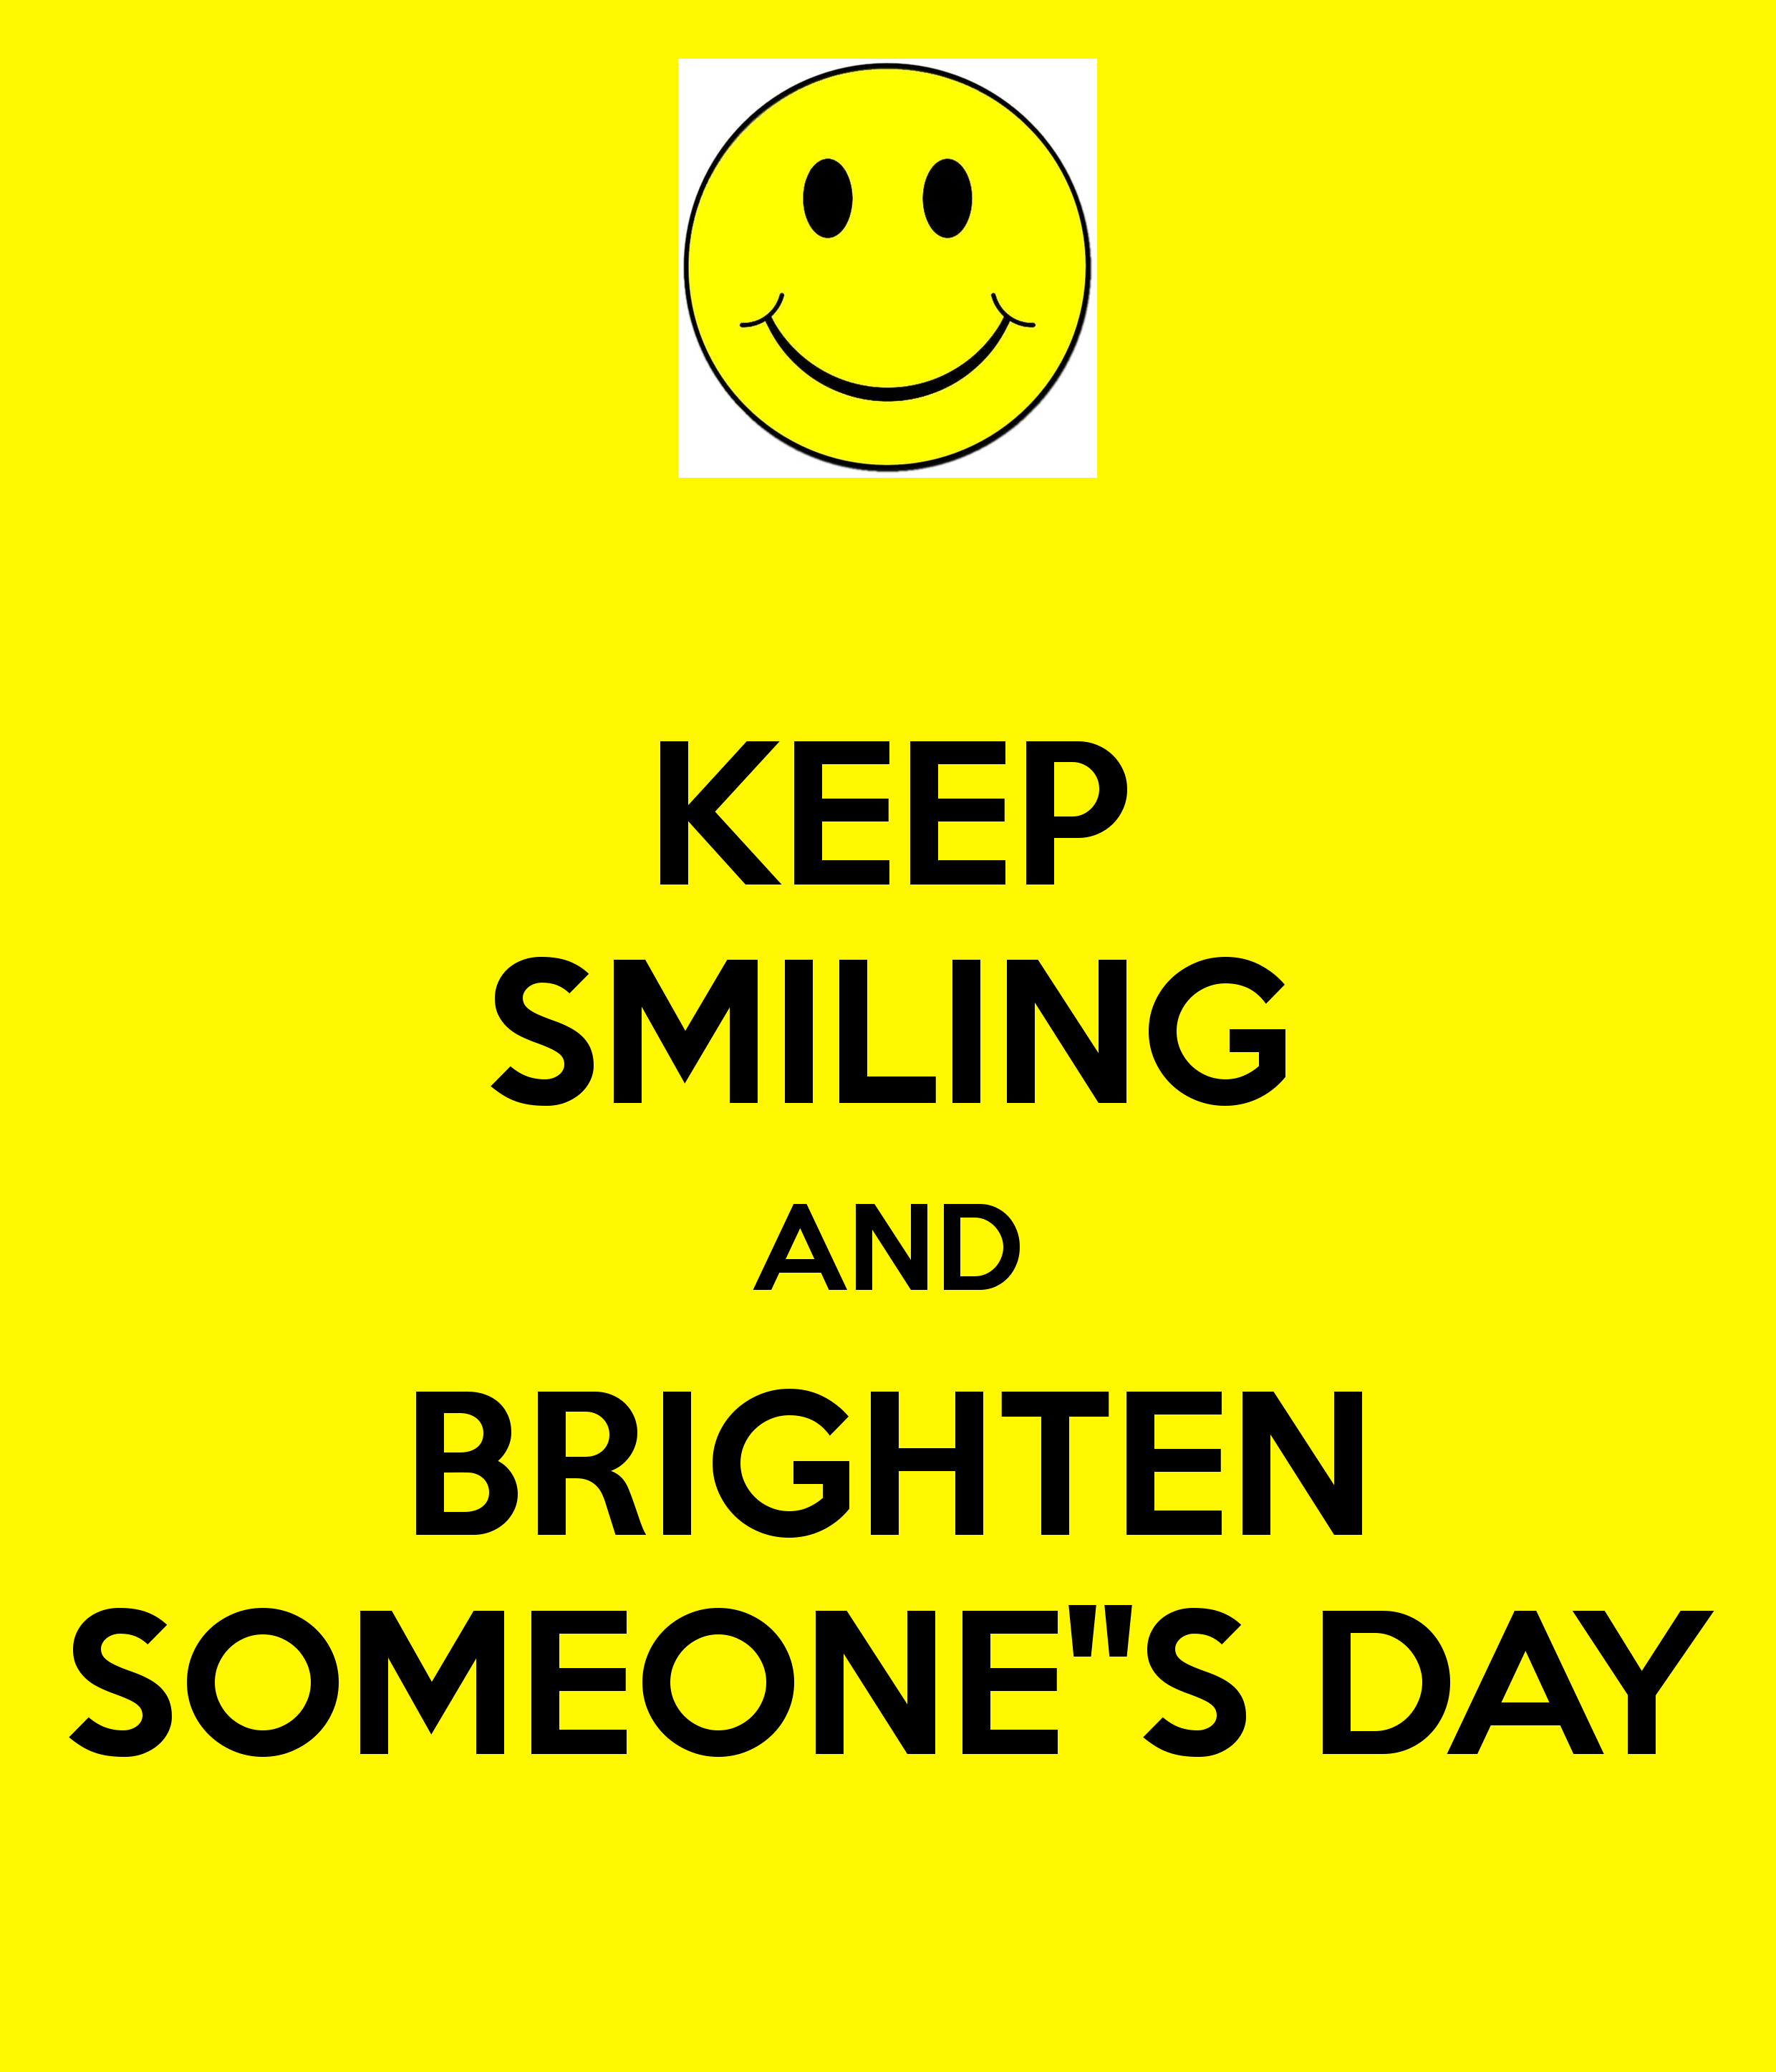 Quotes About Smiling: Keep Smiling Quotes Wallpaper. QuotesGram